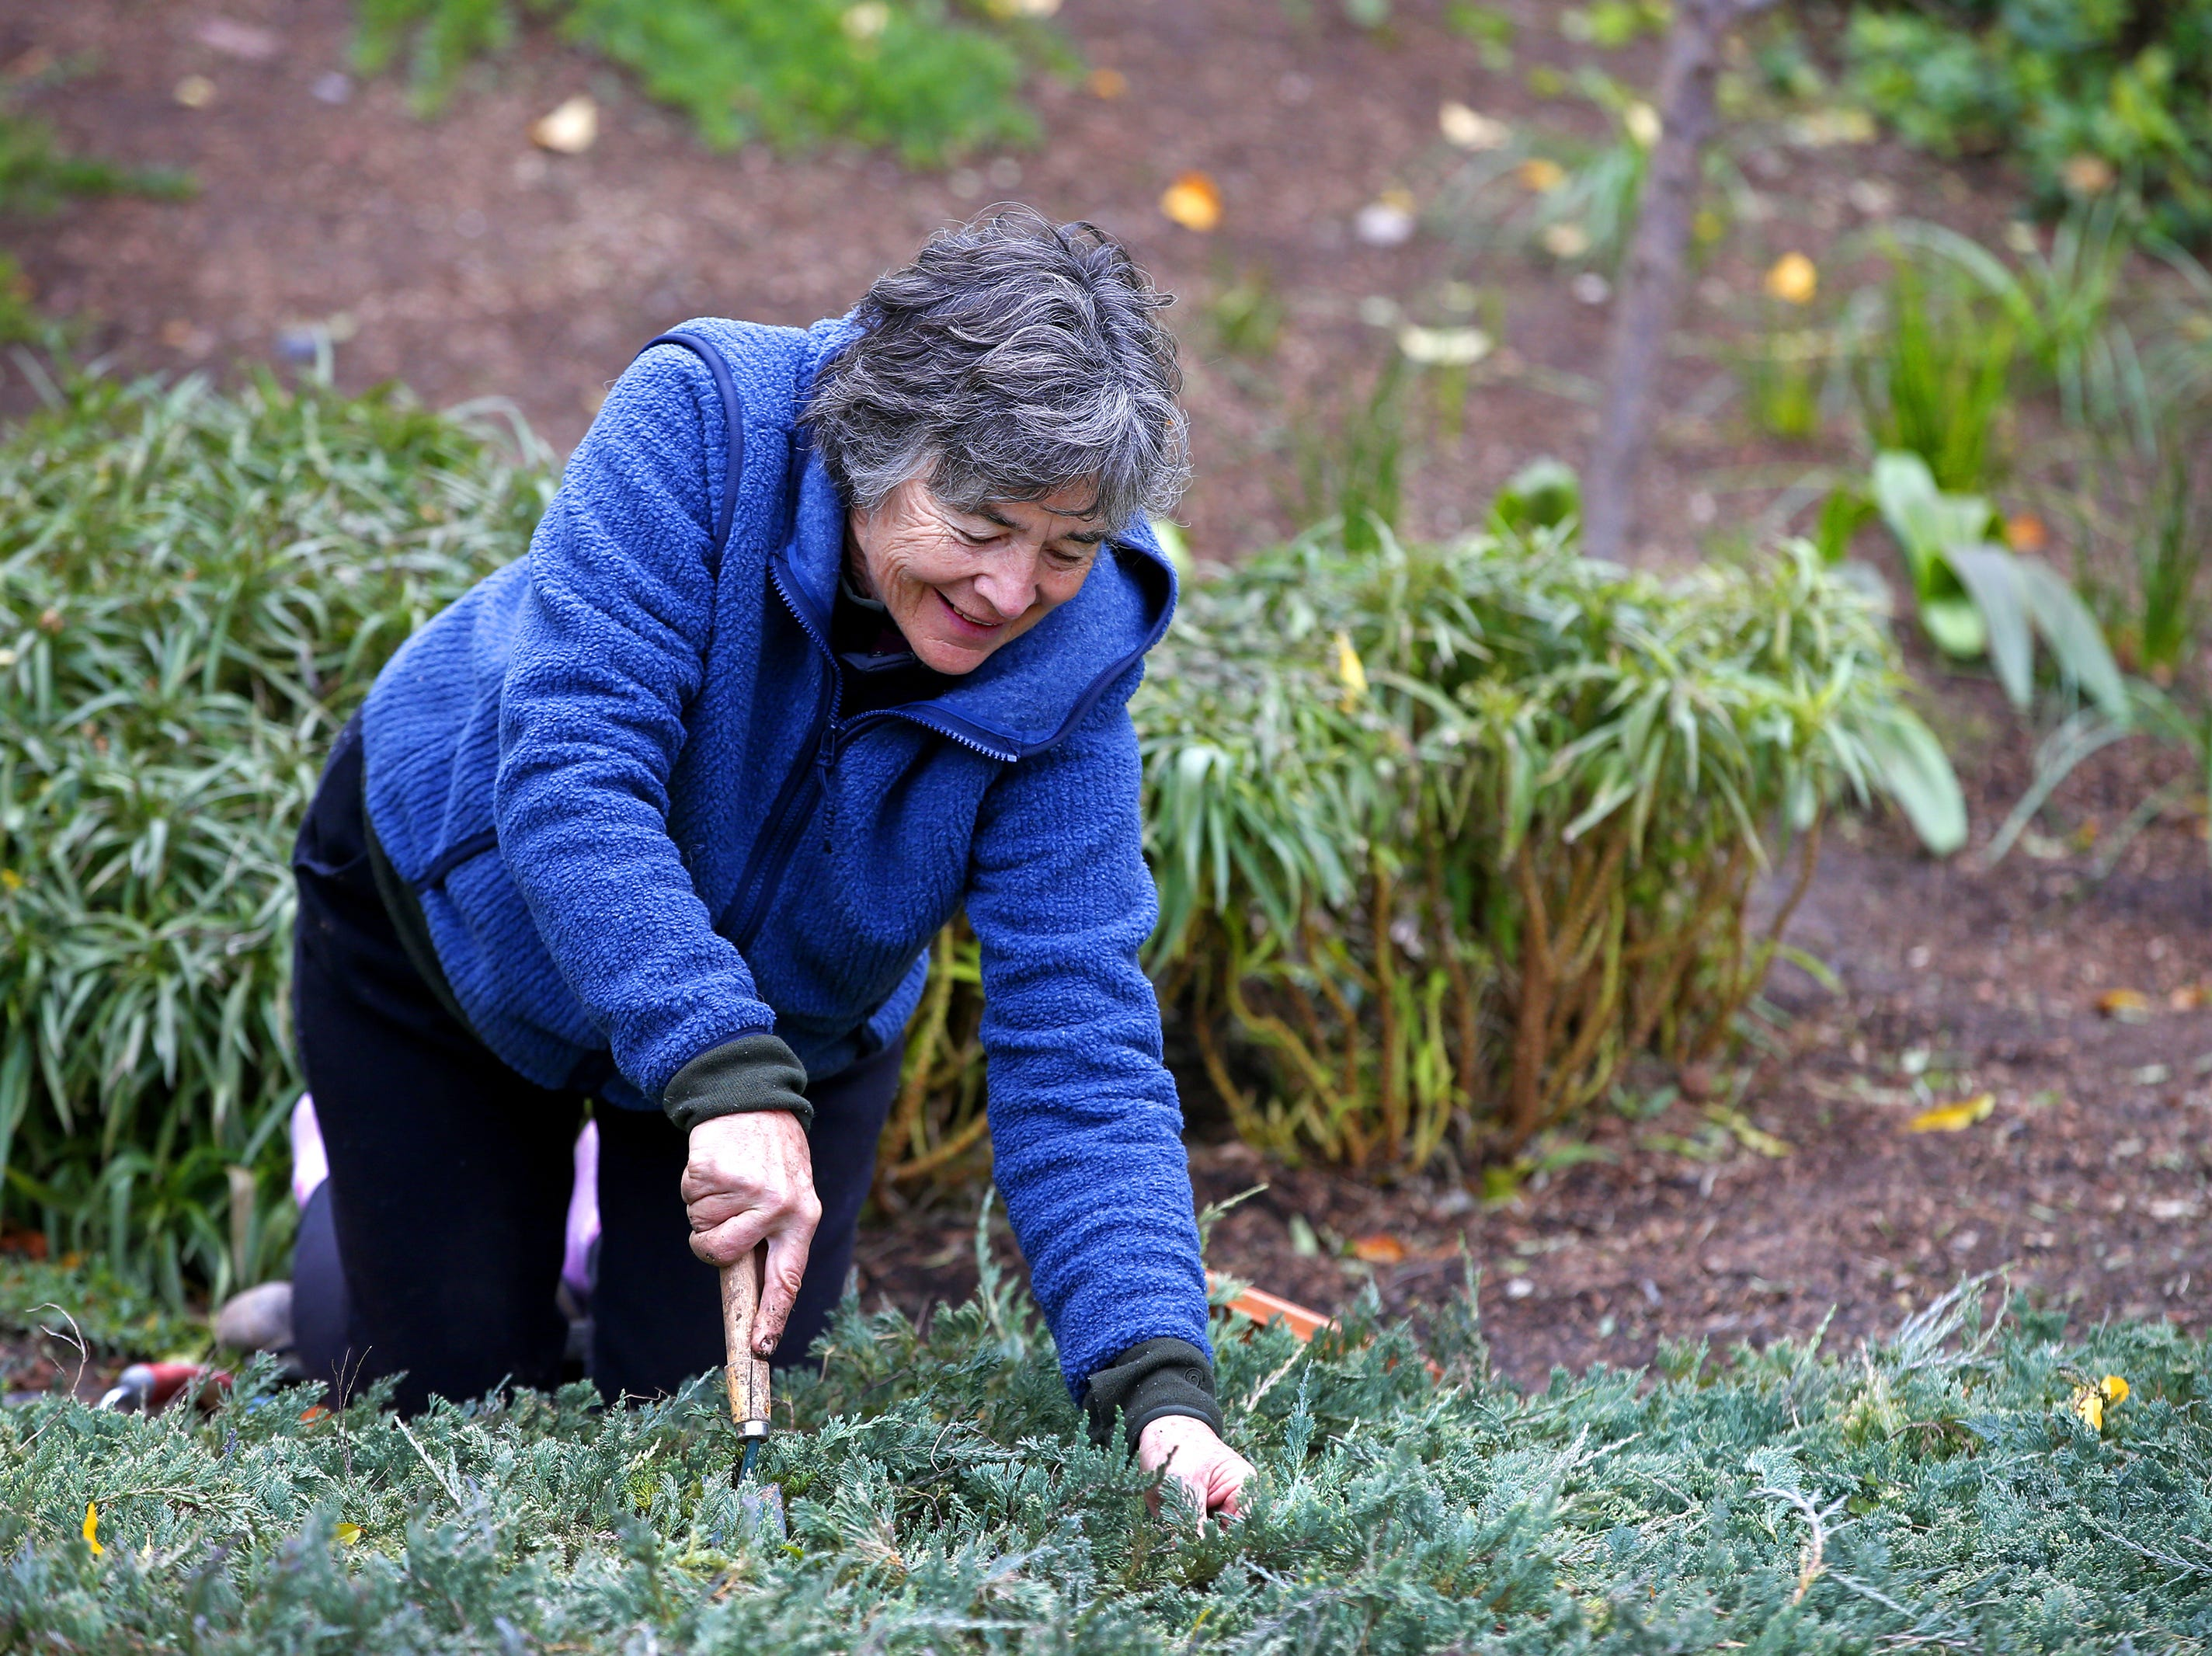 Volunteer, Winnie Woodford, pulls weeds at the Japanese Friendship Garden in Phoenix on January 10, 2019.